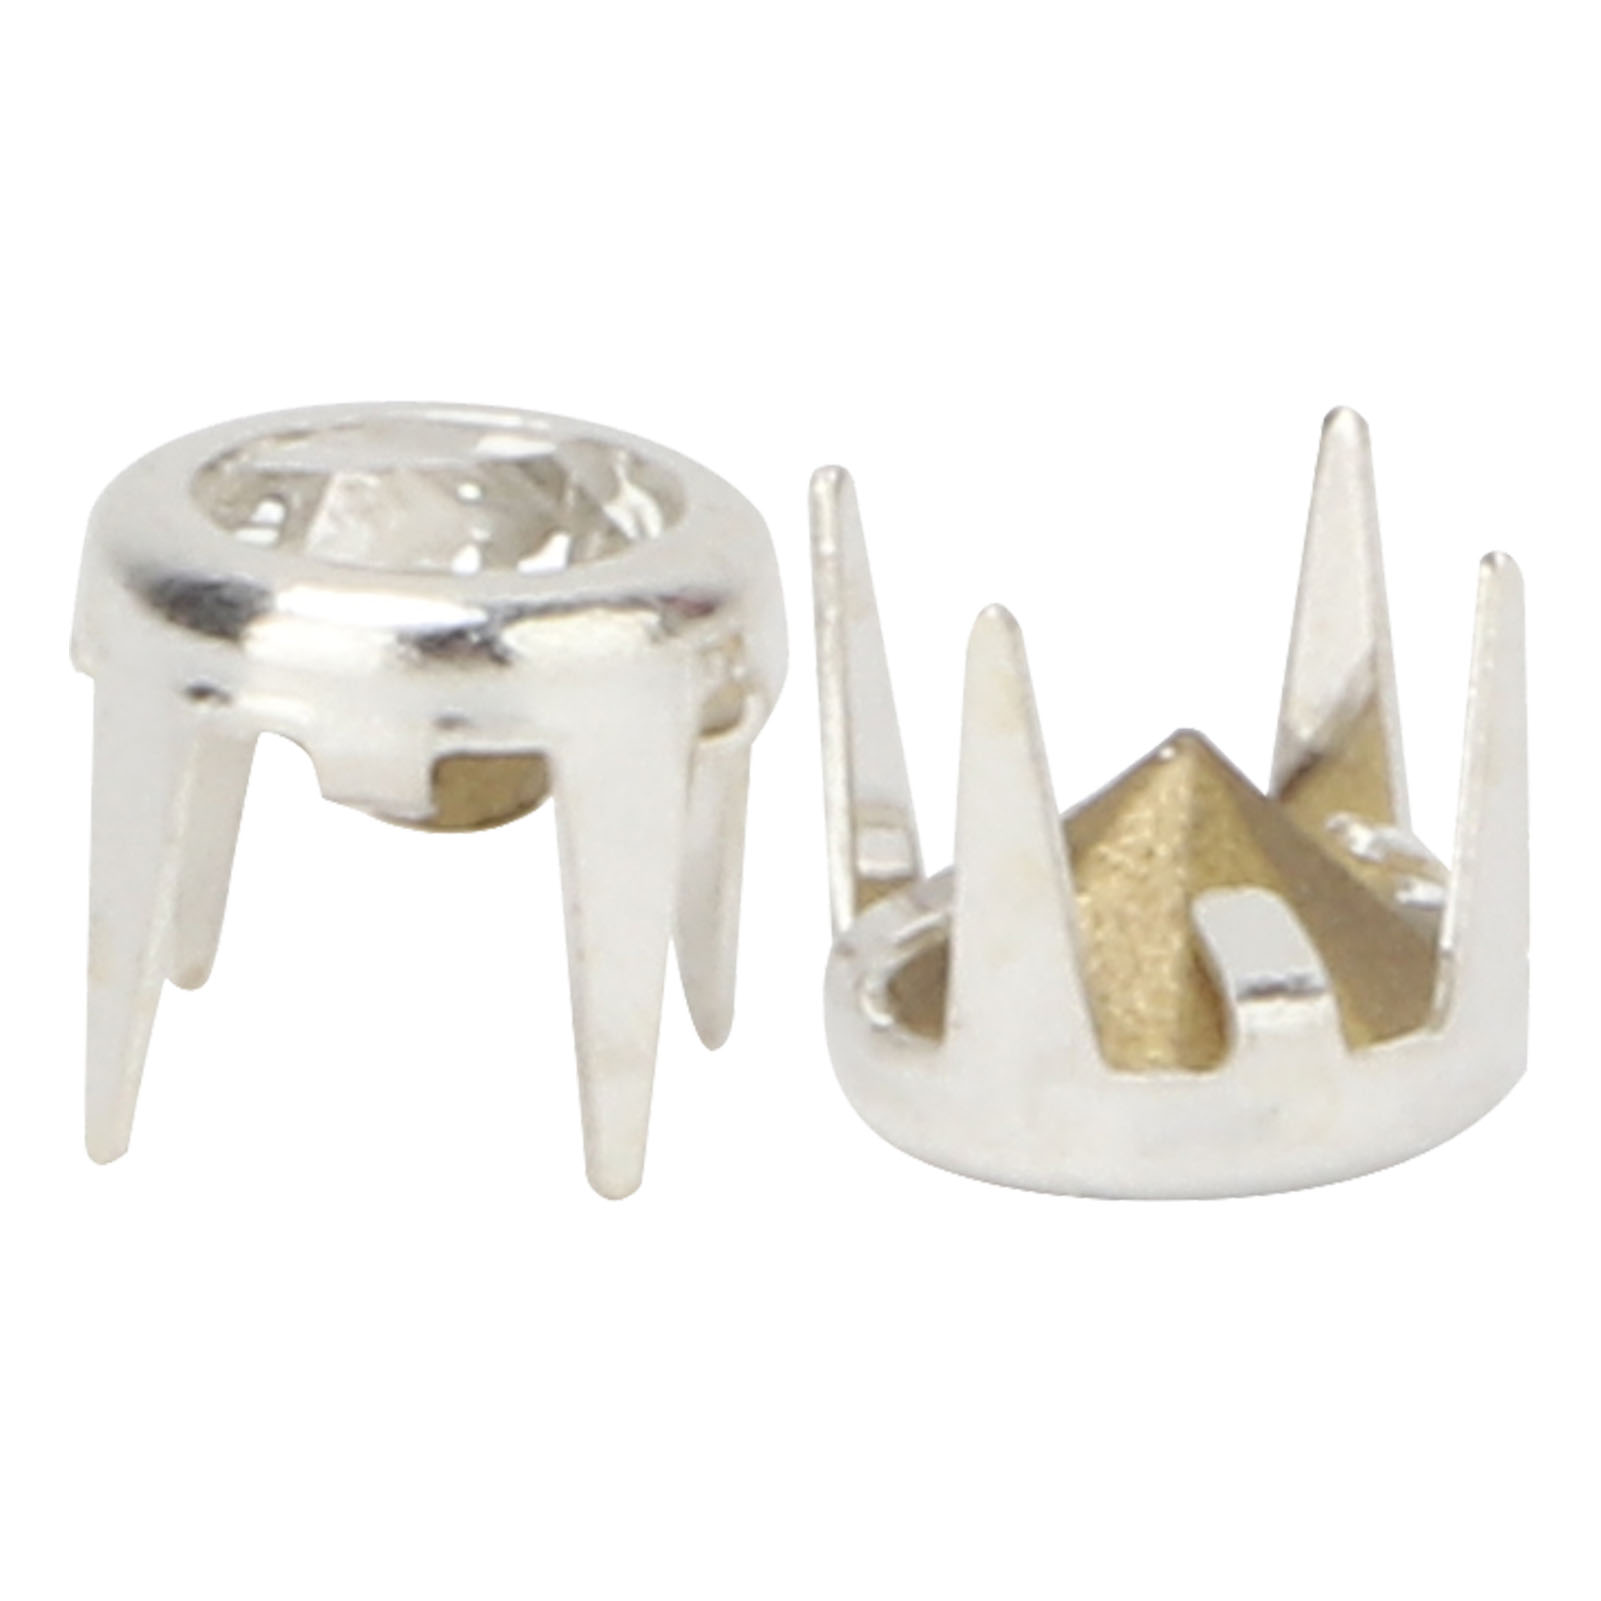 6-7-8-10mm-Rhinestone-Diamond-Crystal-Rivets-Studs-Leather-For-Bags-Shoe-Decor miniature 48